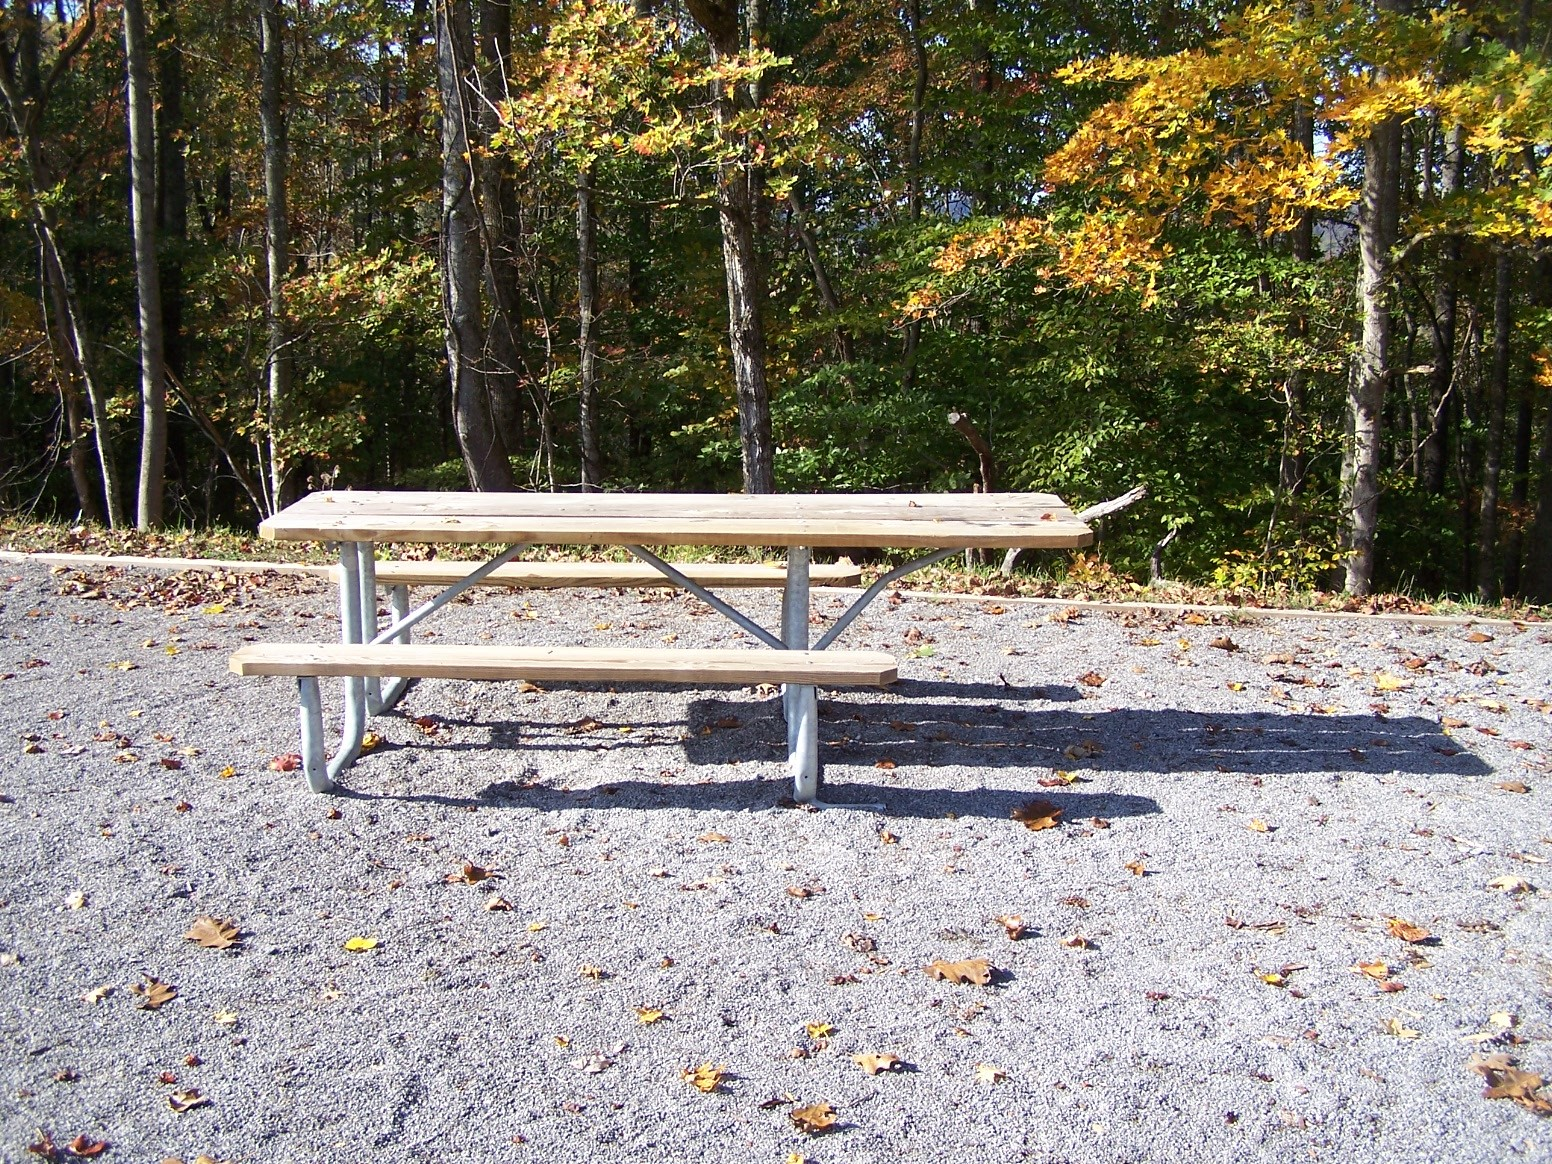 Universally Designed Picnic Bench